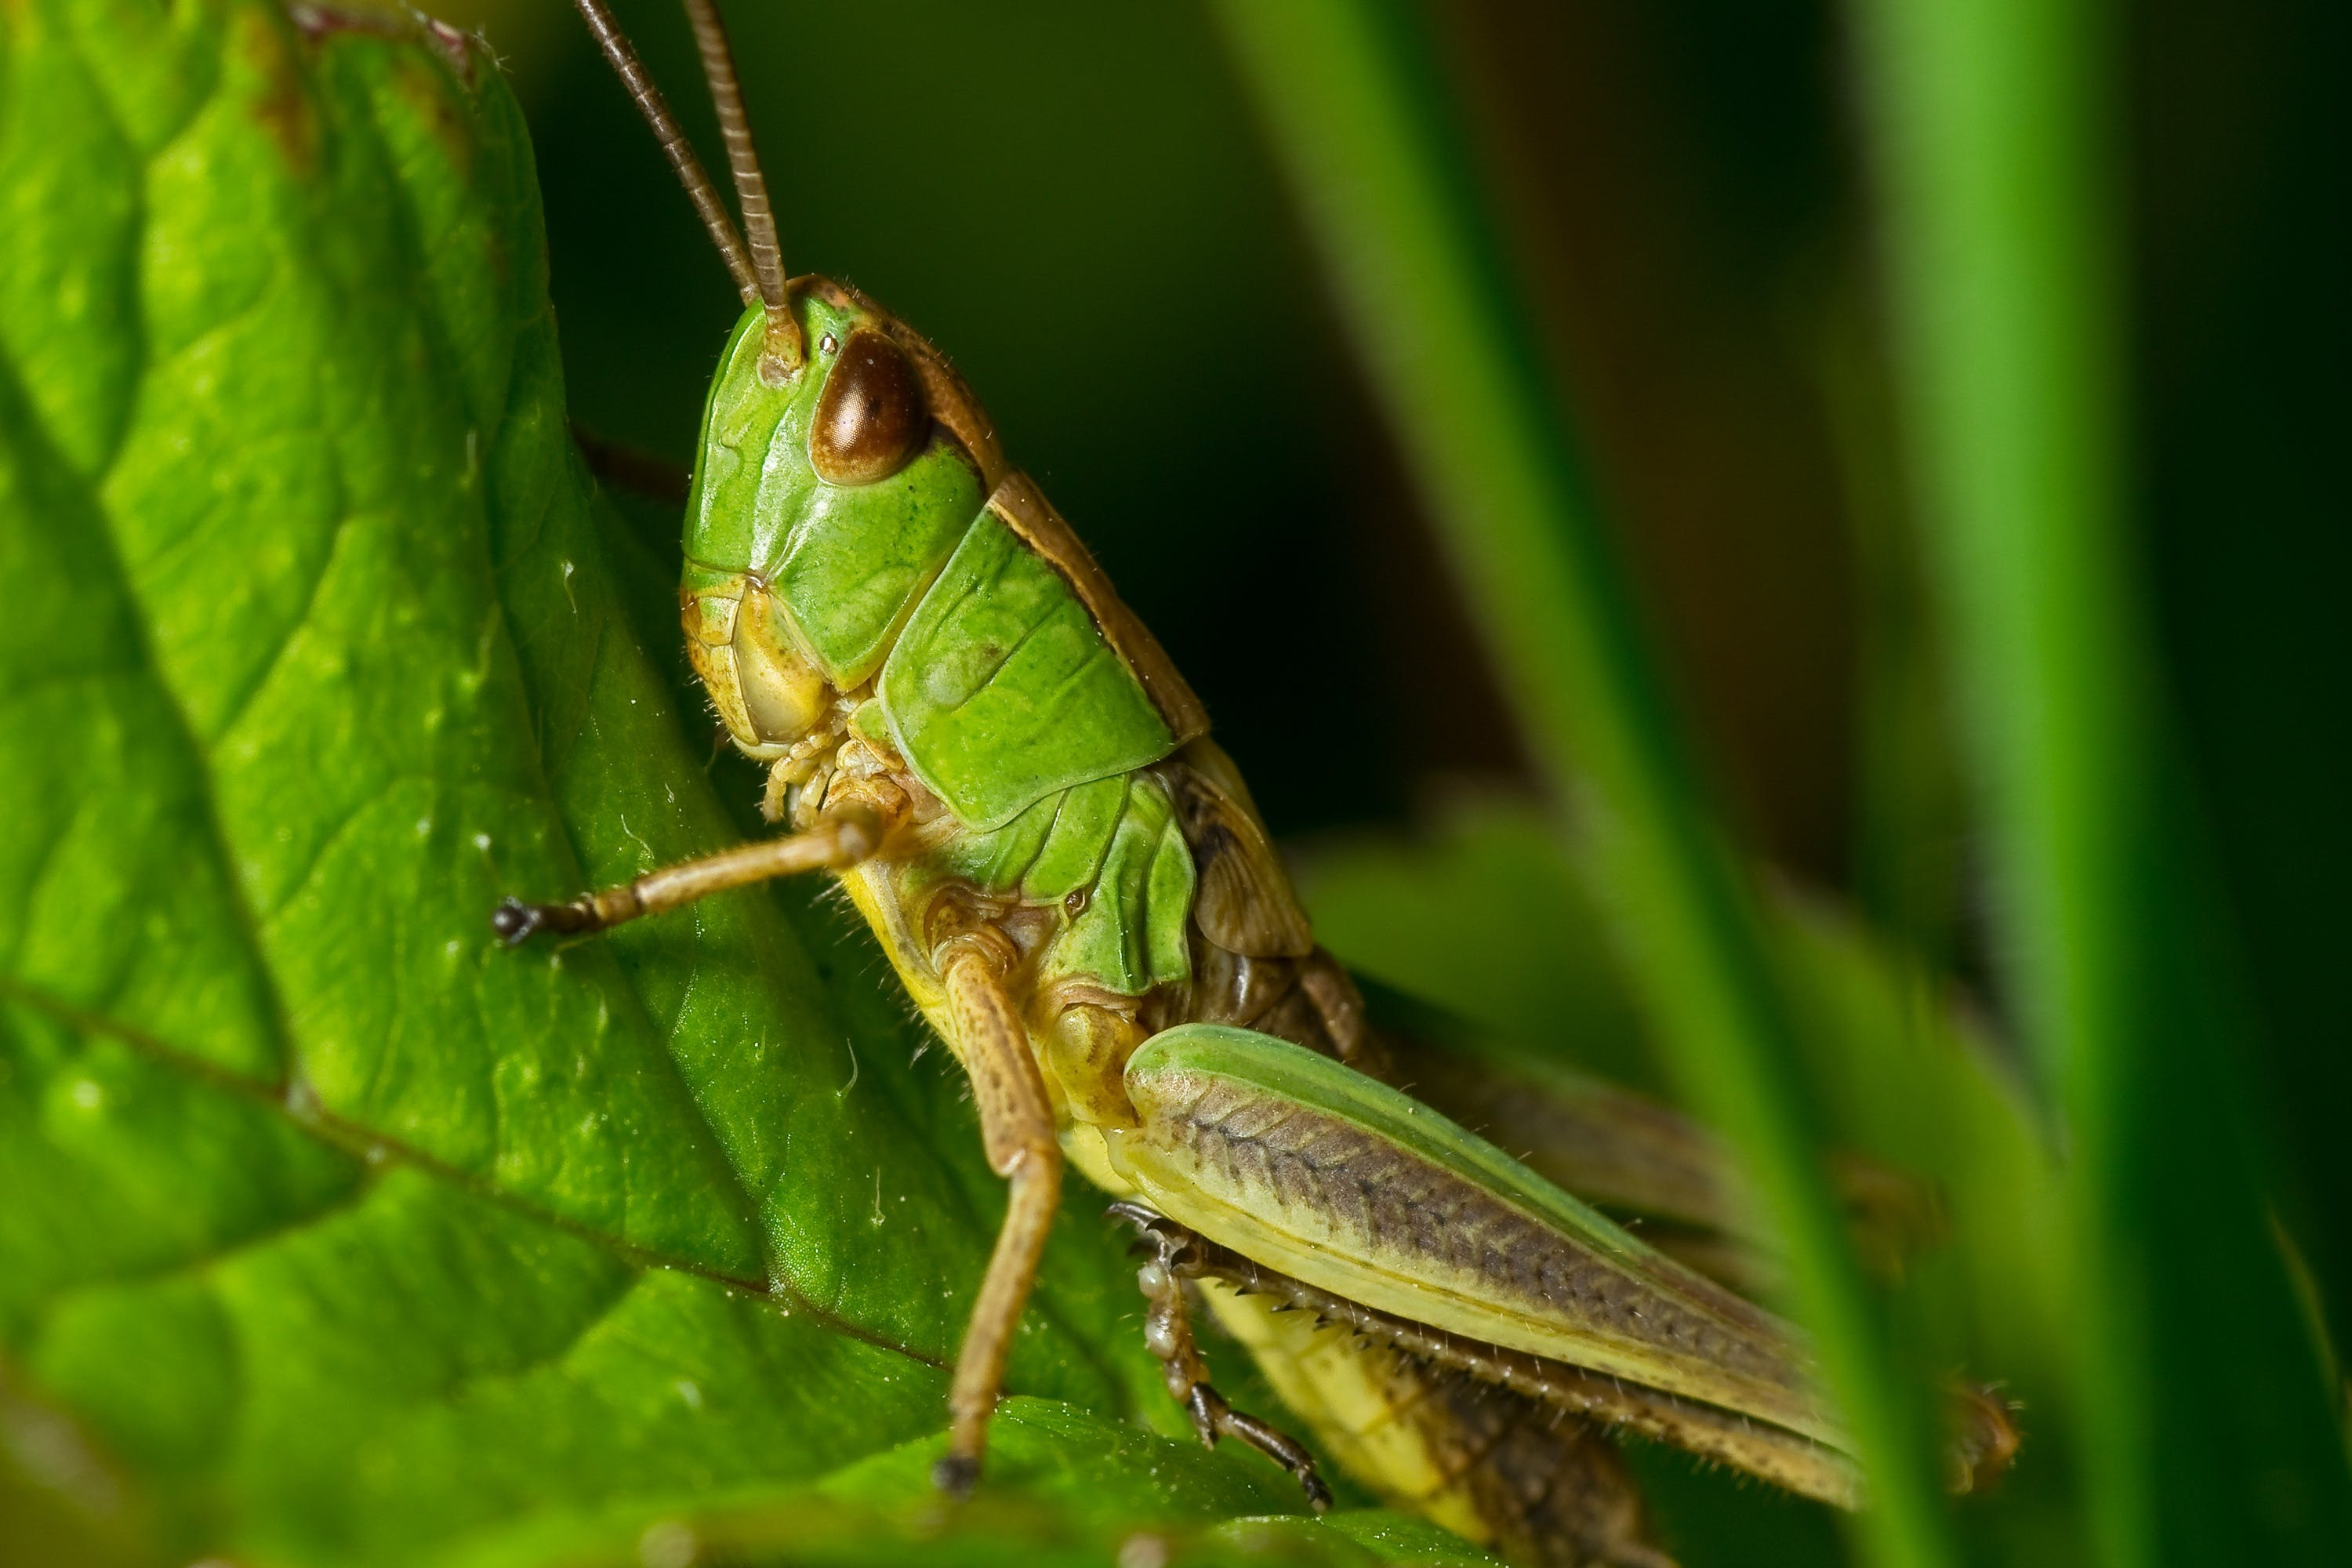 Grasshopper Green and Yellow